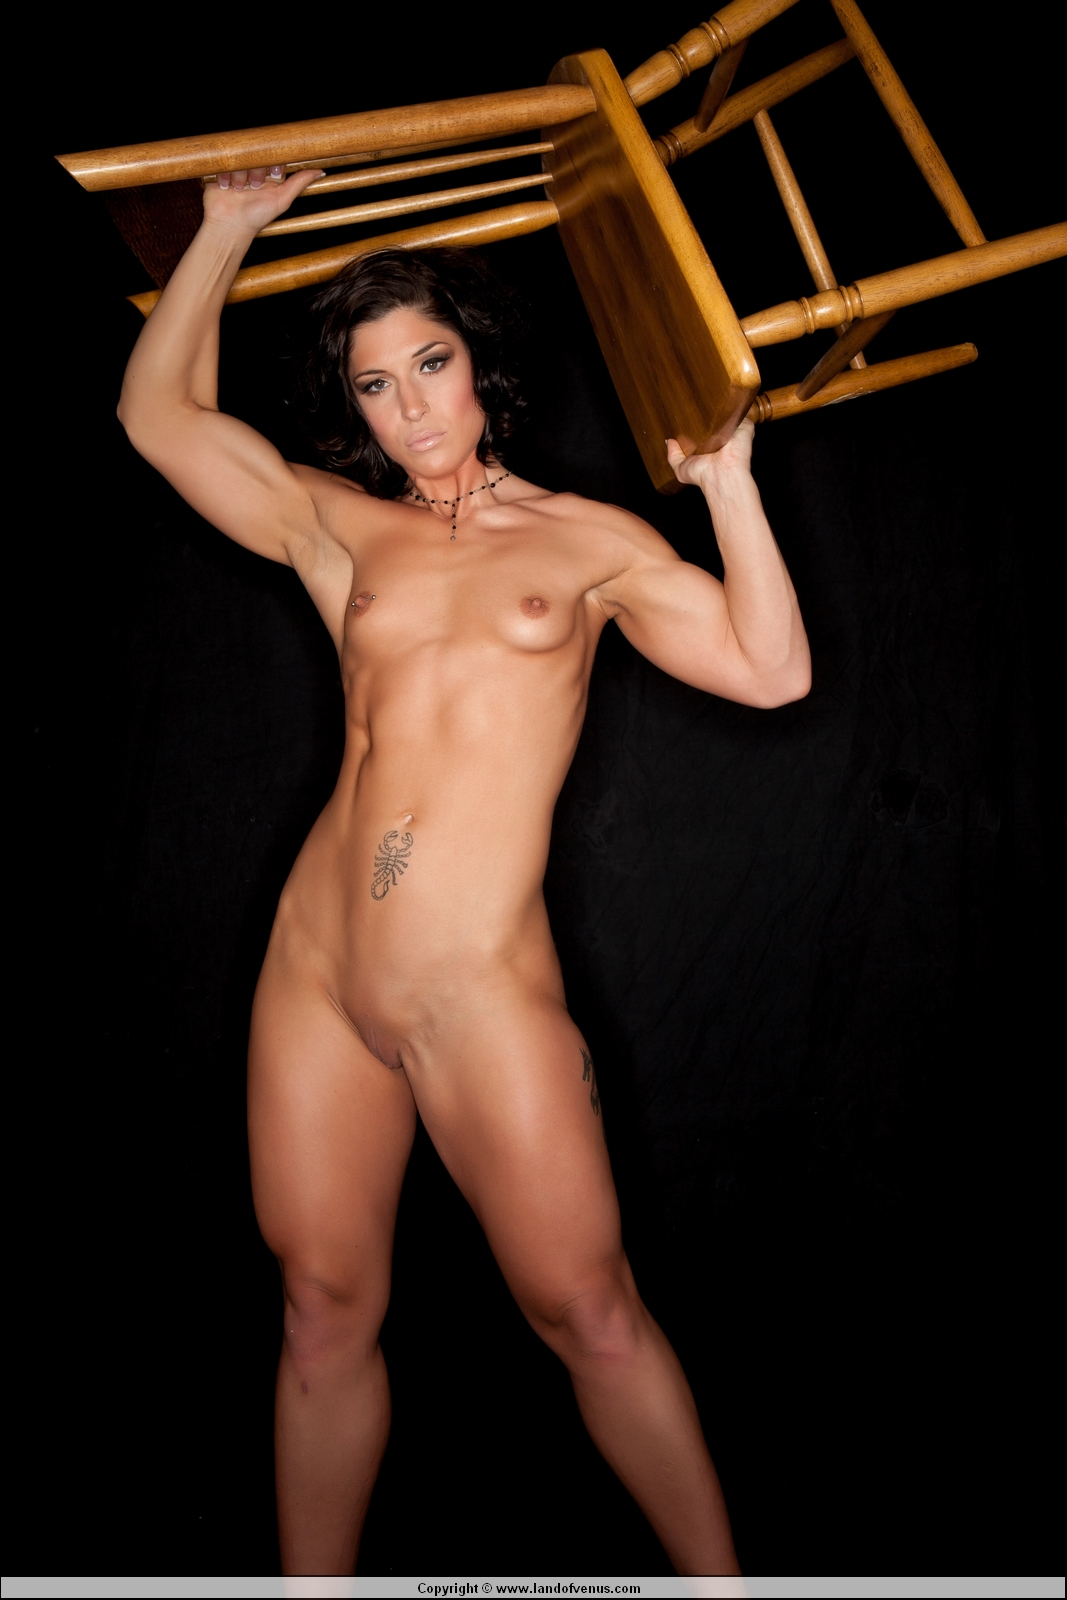 Regret, Nude female sport star